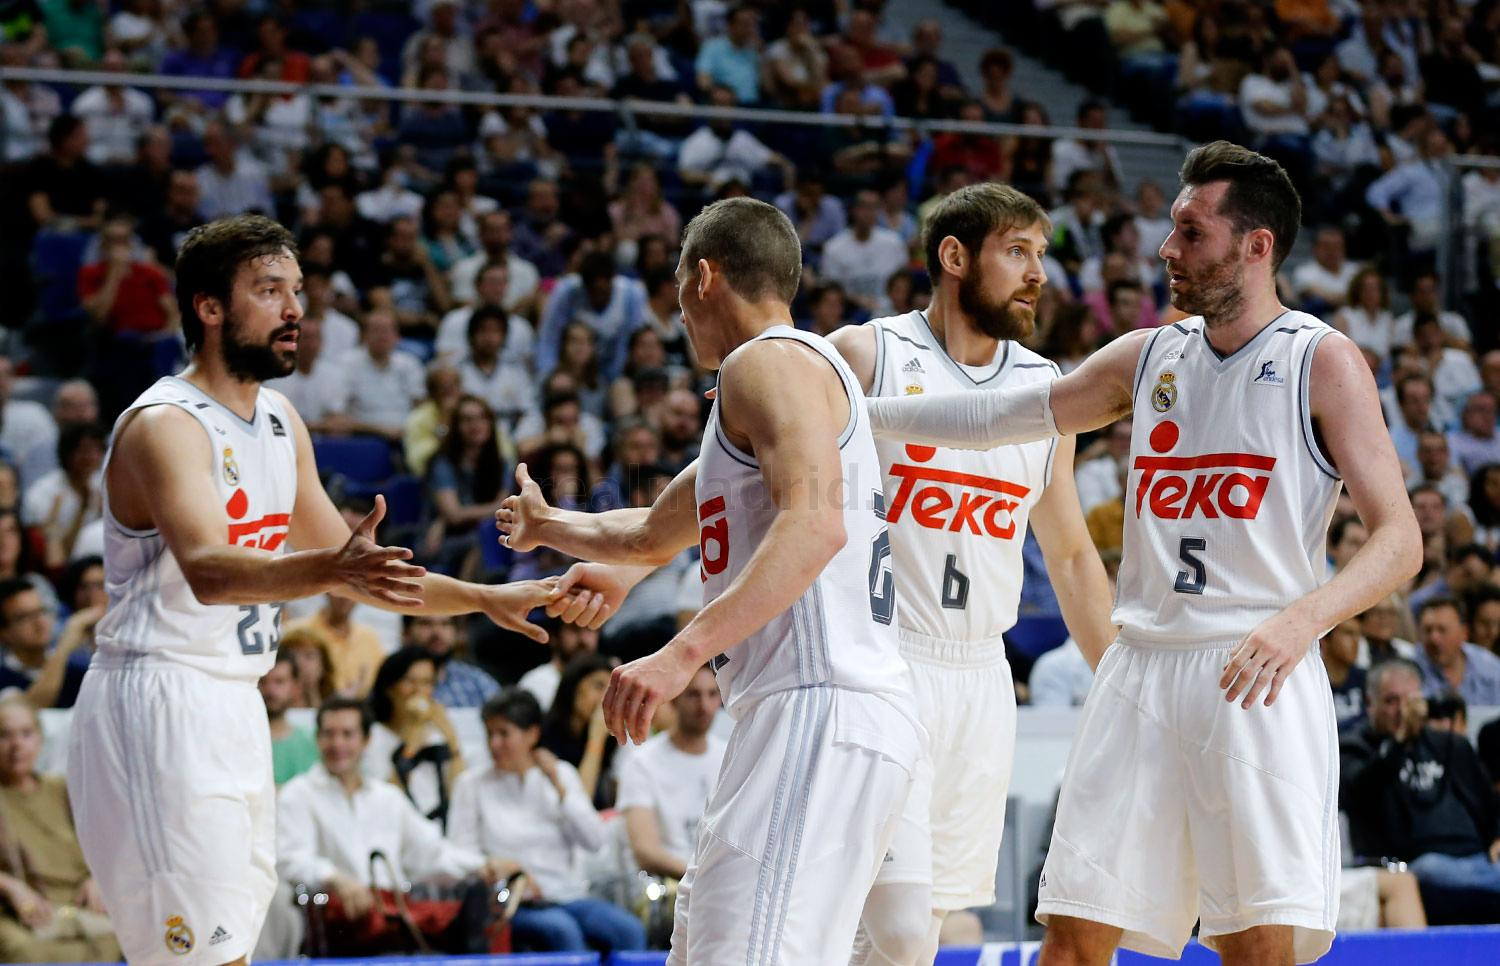 Real Madrid - Real Madrid - Valencia Basket - 05-06-2016